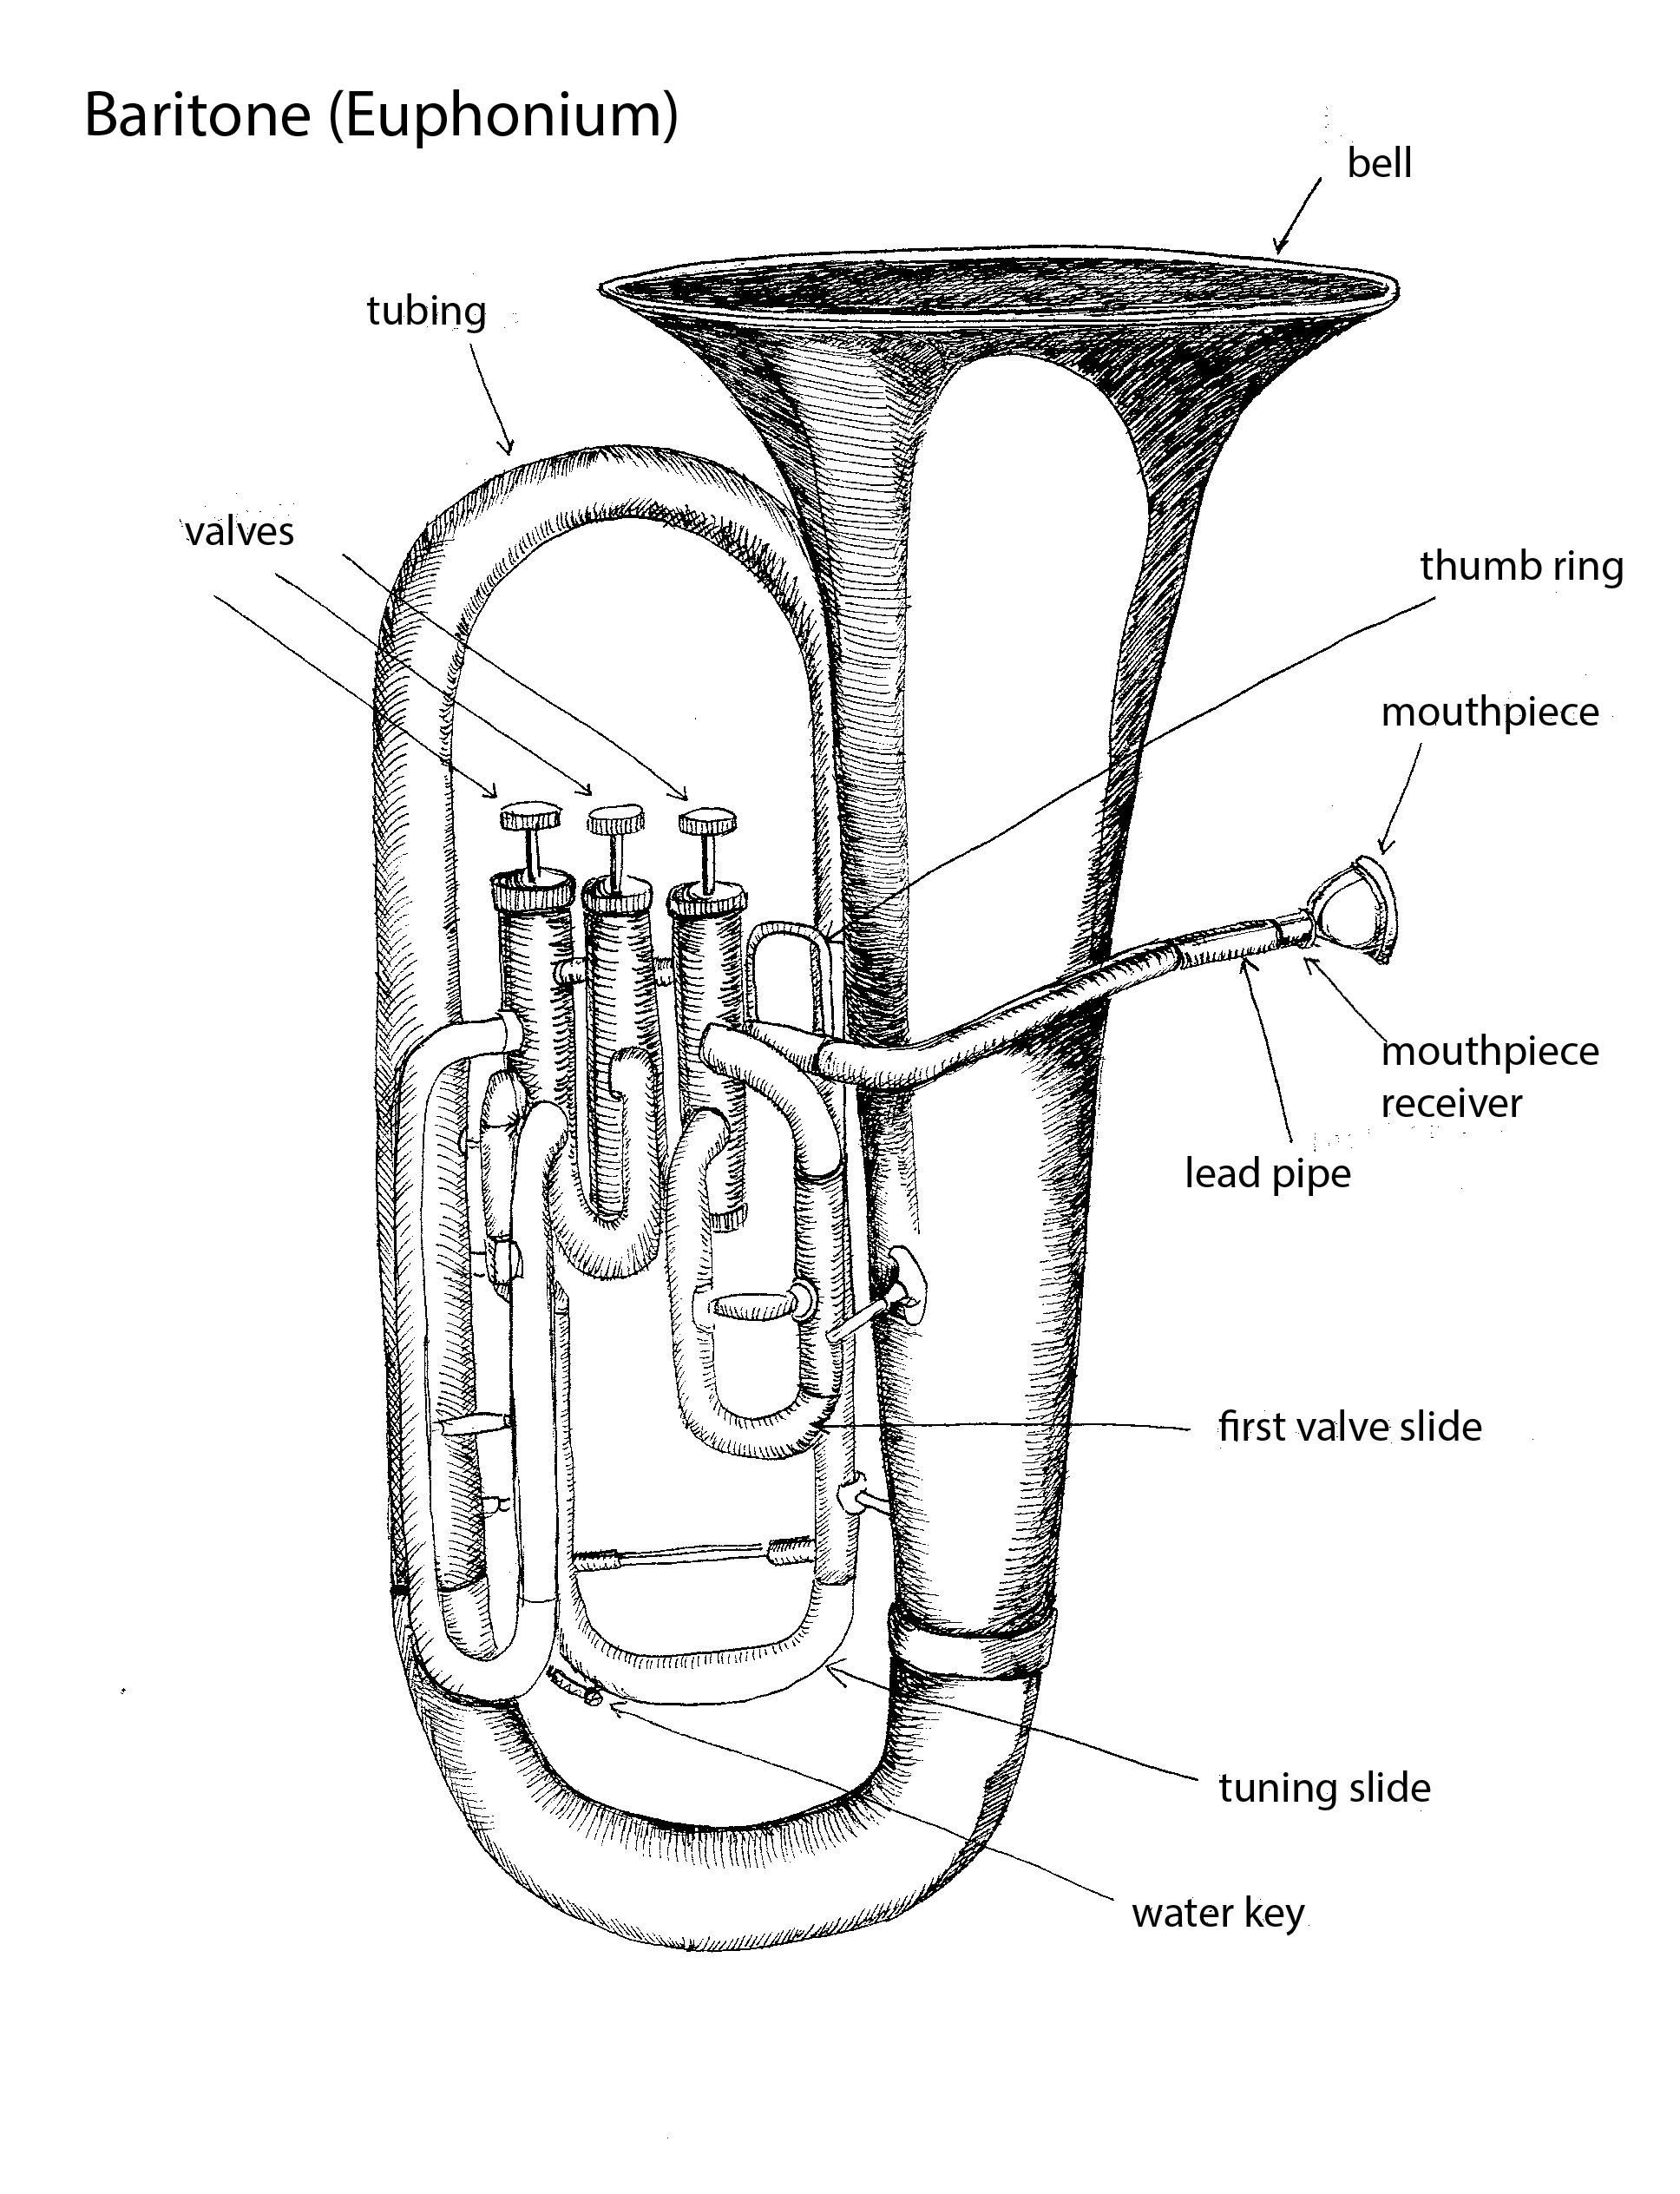 Parts Of The Baritone Euphonium By Tracie Noles Ross